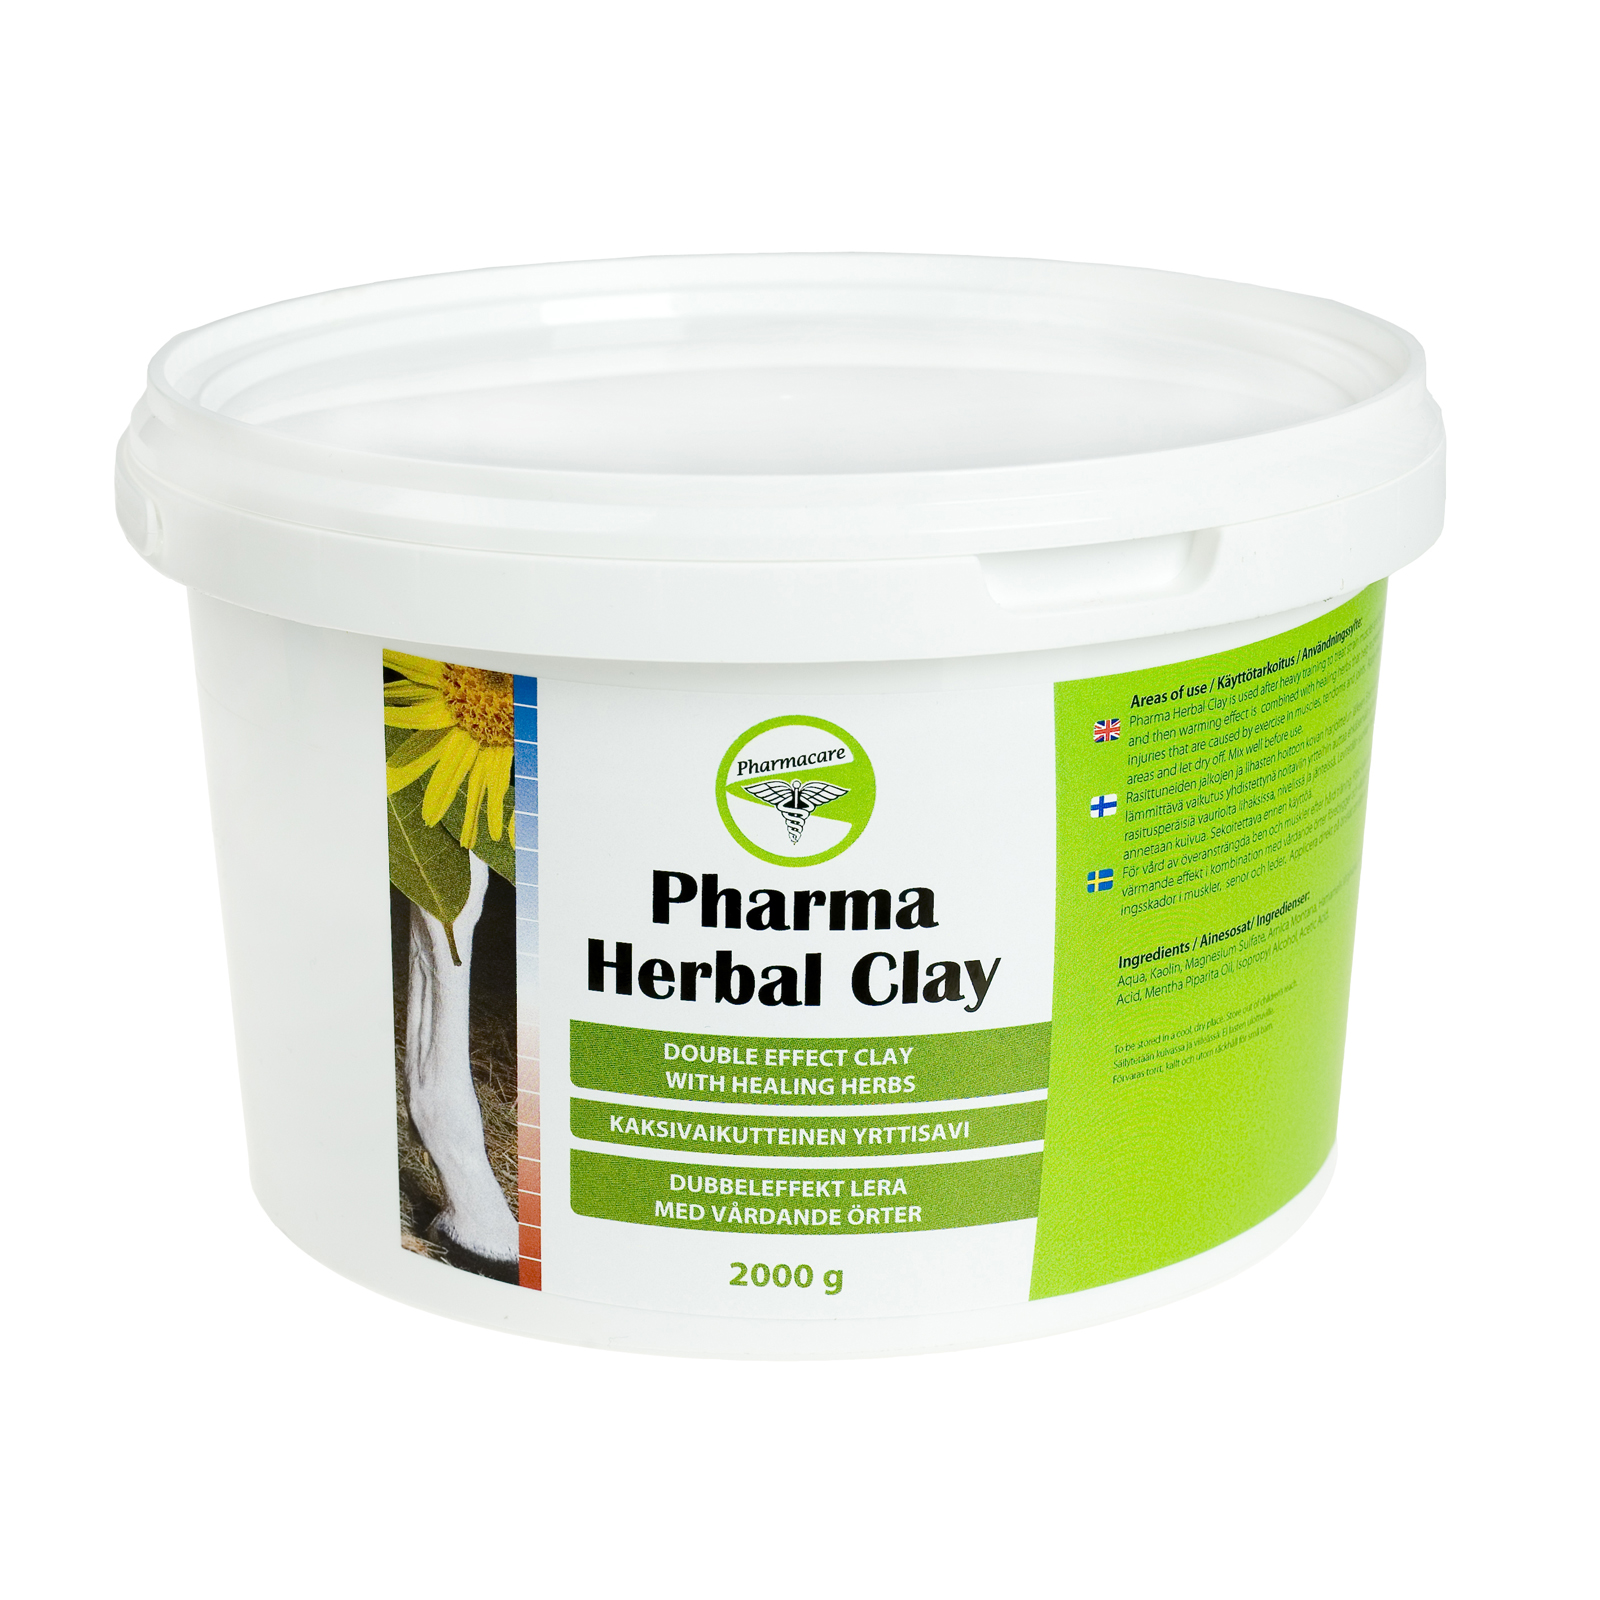 Pharma Herbal Clay savi, 4x2kg